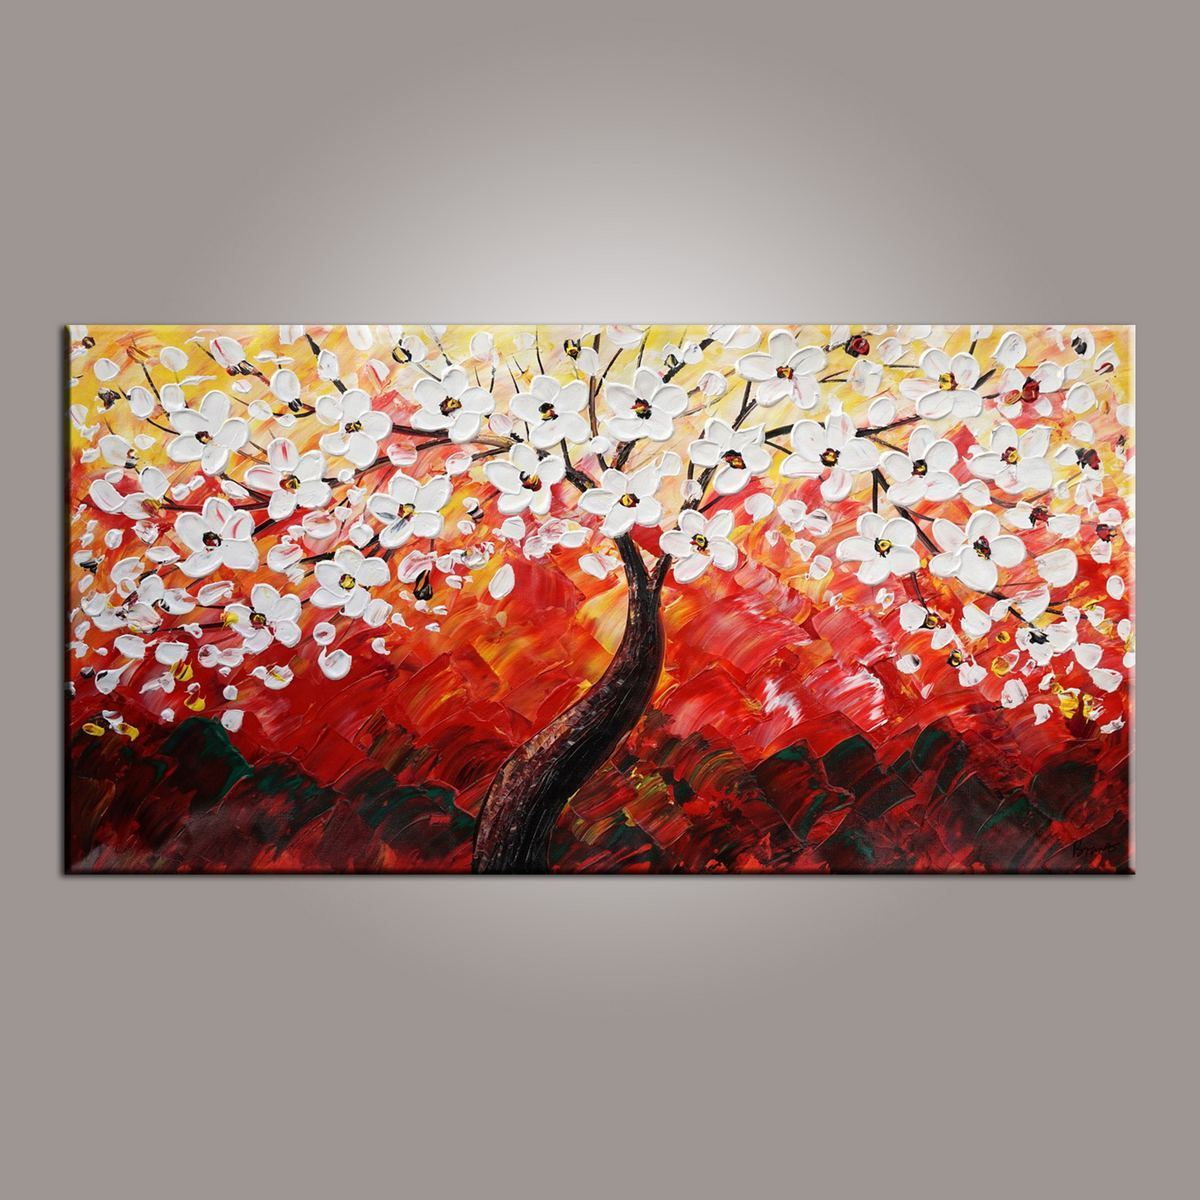 Painting for Sale, Heavy Texture Painting, Flower Oil Painting, Abstract Art Painting, Bedroom Wall Art, Contemporary Art - artworkcanvas